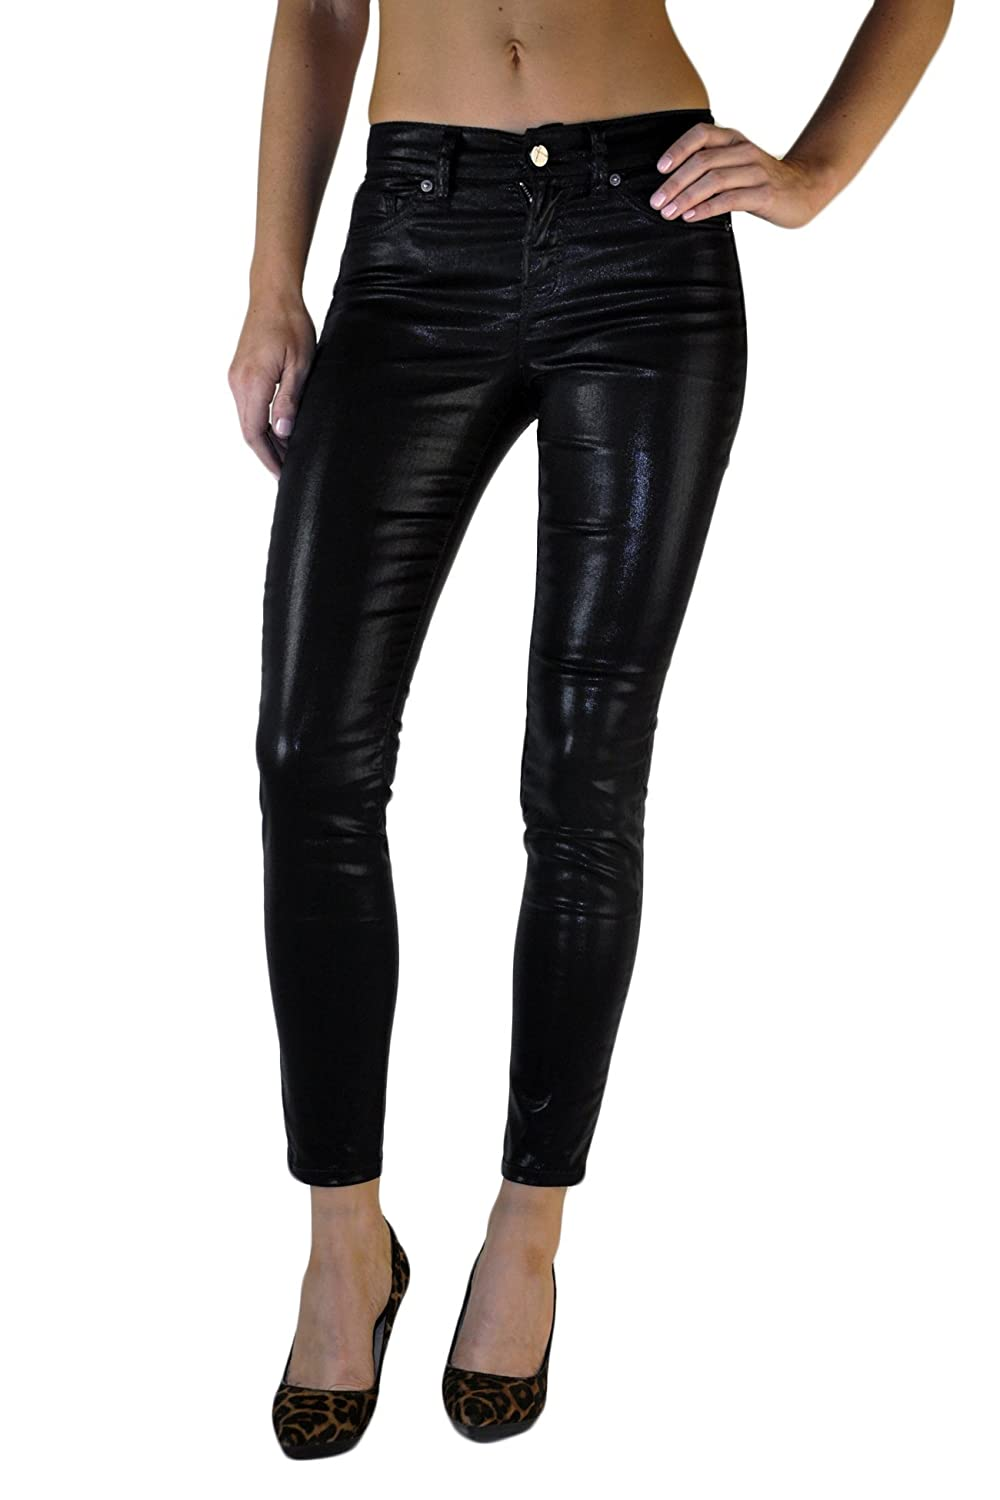 Standards & Practices Women's Black Coated Stretch Denim Cropped Skinny Jeans